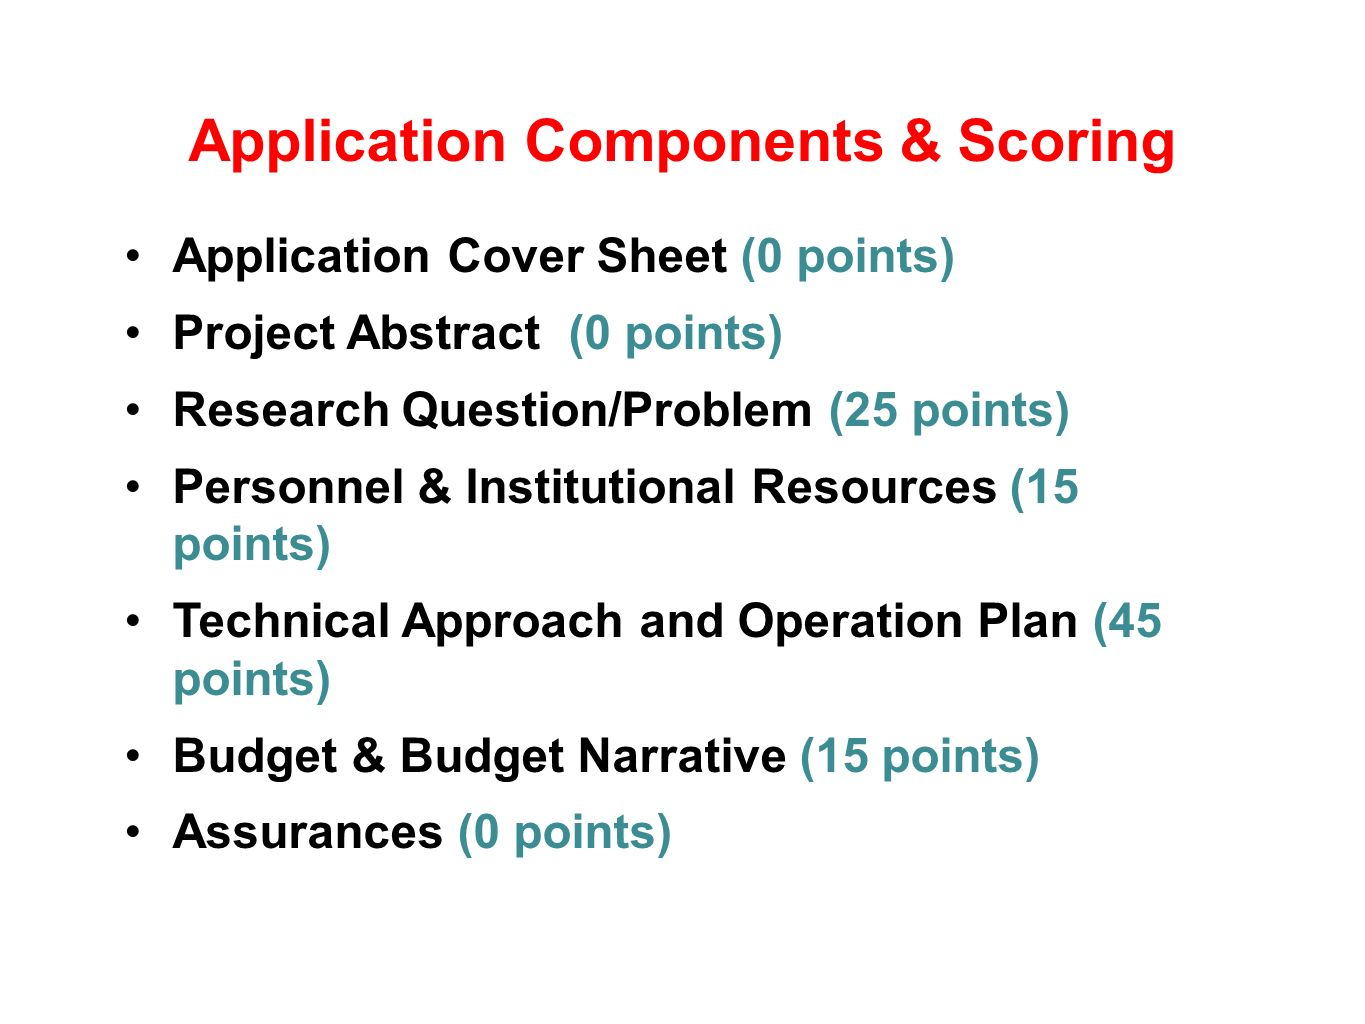 Application Components & Scoring Application Cover Sheet (0 points) Project Abstract (0 points) Research Question/Problem (25 points) Personnel & Institutional Resources (15 points) Technical Approach and Operation Plan (45 points) Budget & Budget Narrative (15 points) Assurances (0 points)